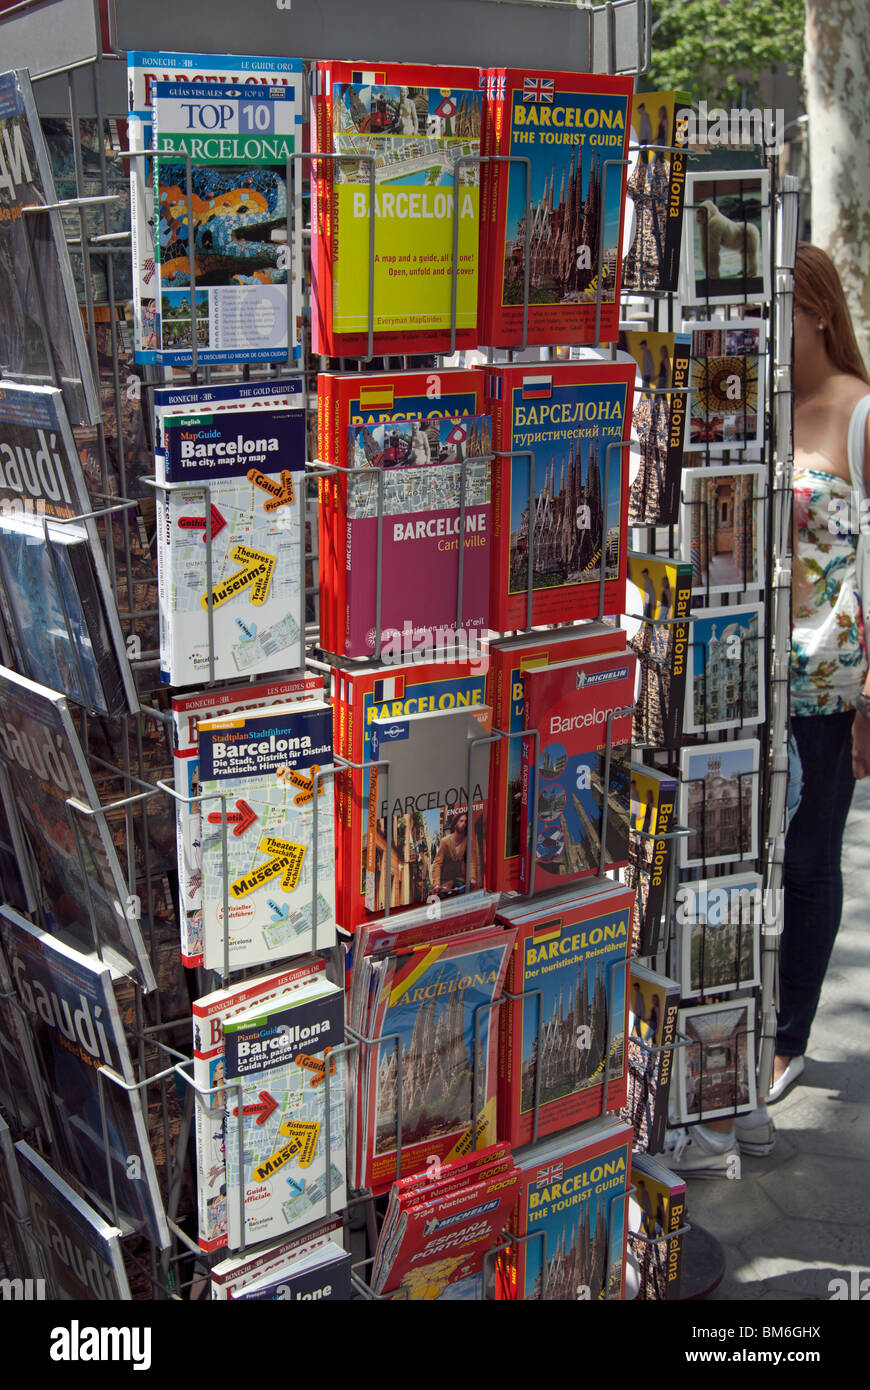 Postcard and Guide Book Display, Barcelona, Spain - Stock Image